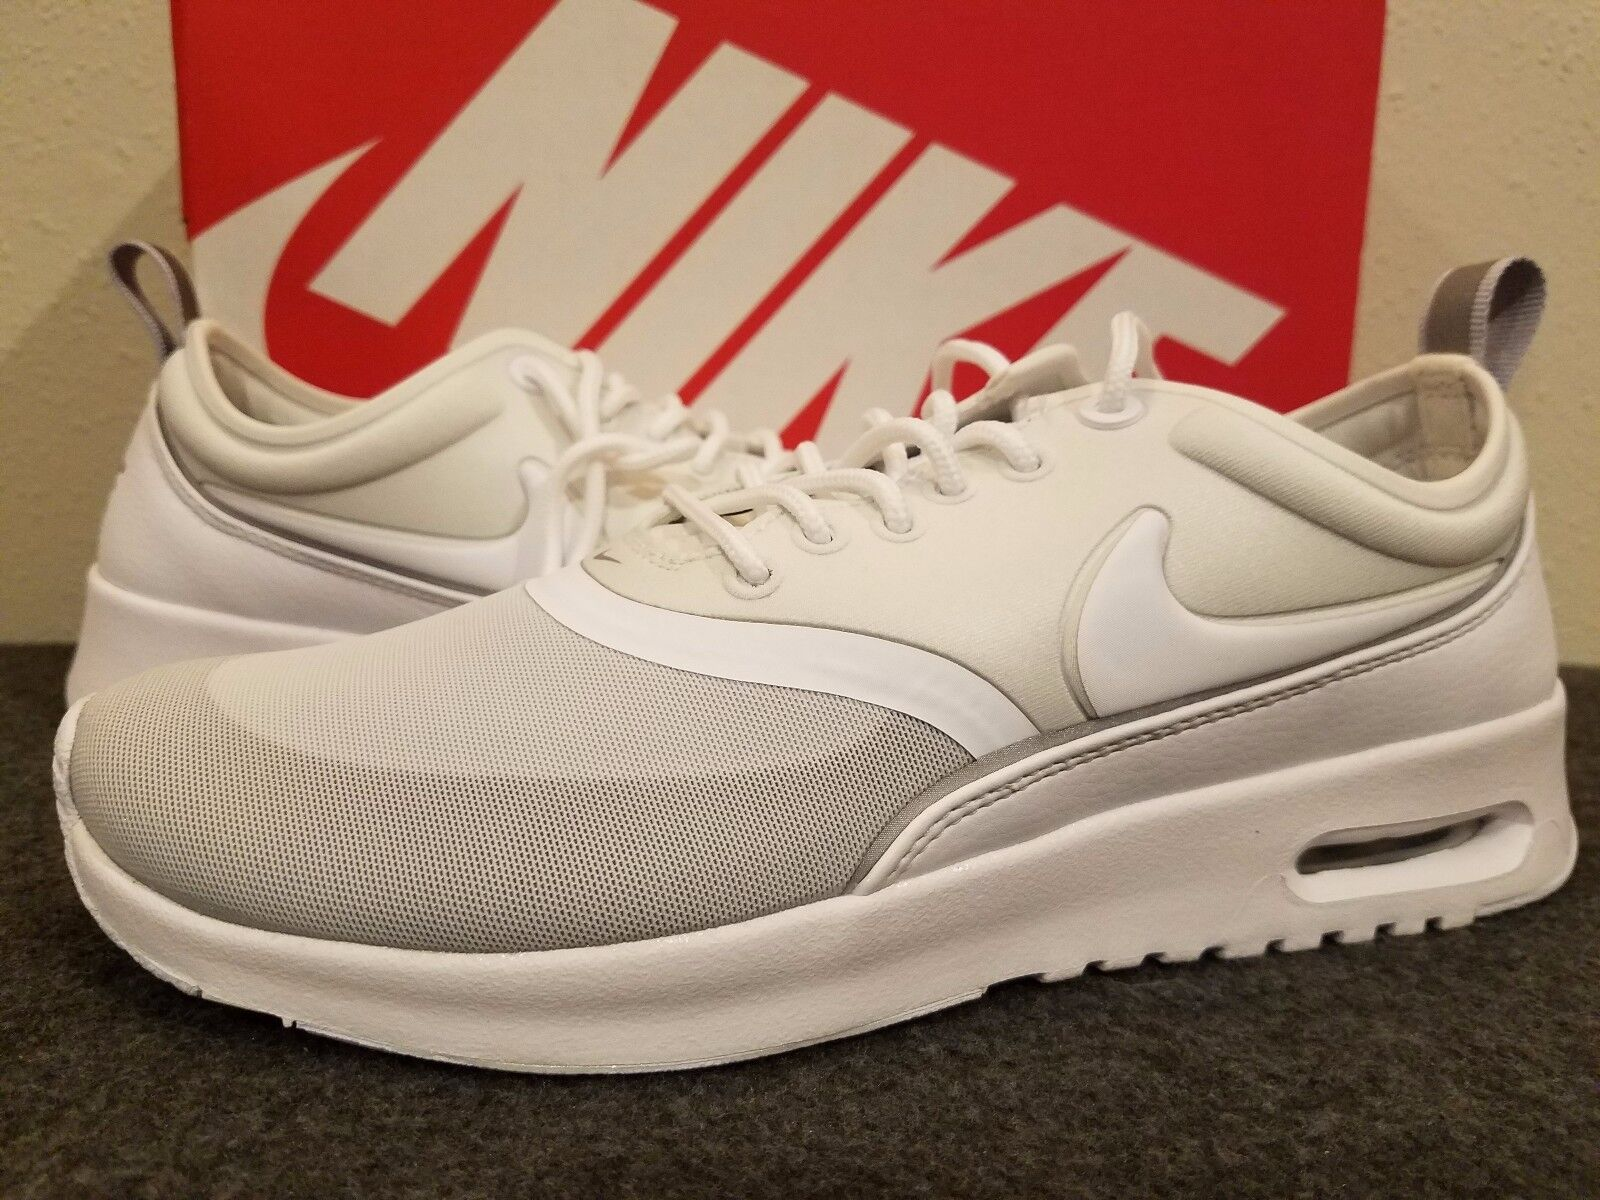 Women's Nike Air Max Thea Ultra Running Shoes WhiteMet Slv 844926 100 Size 7